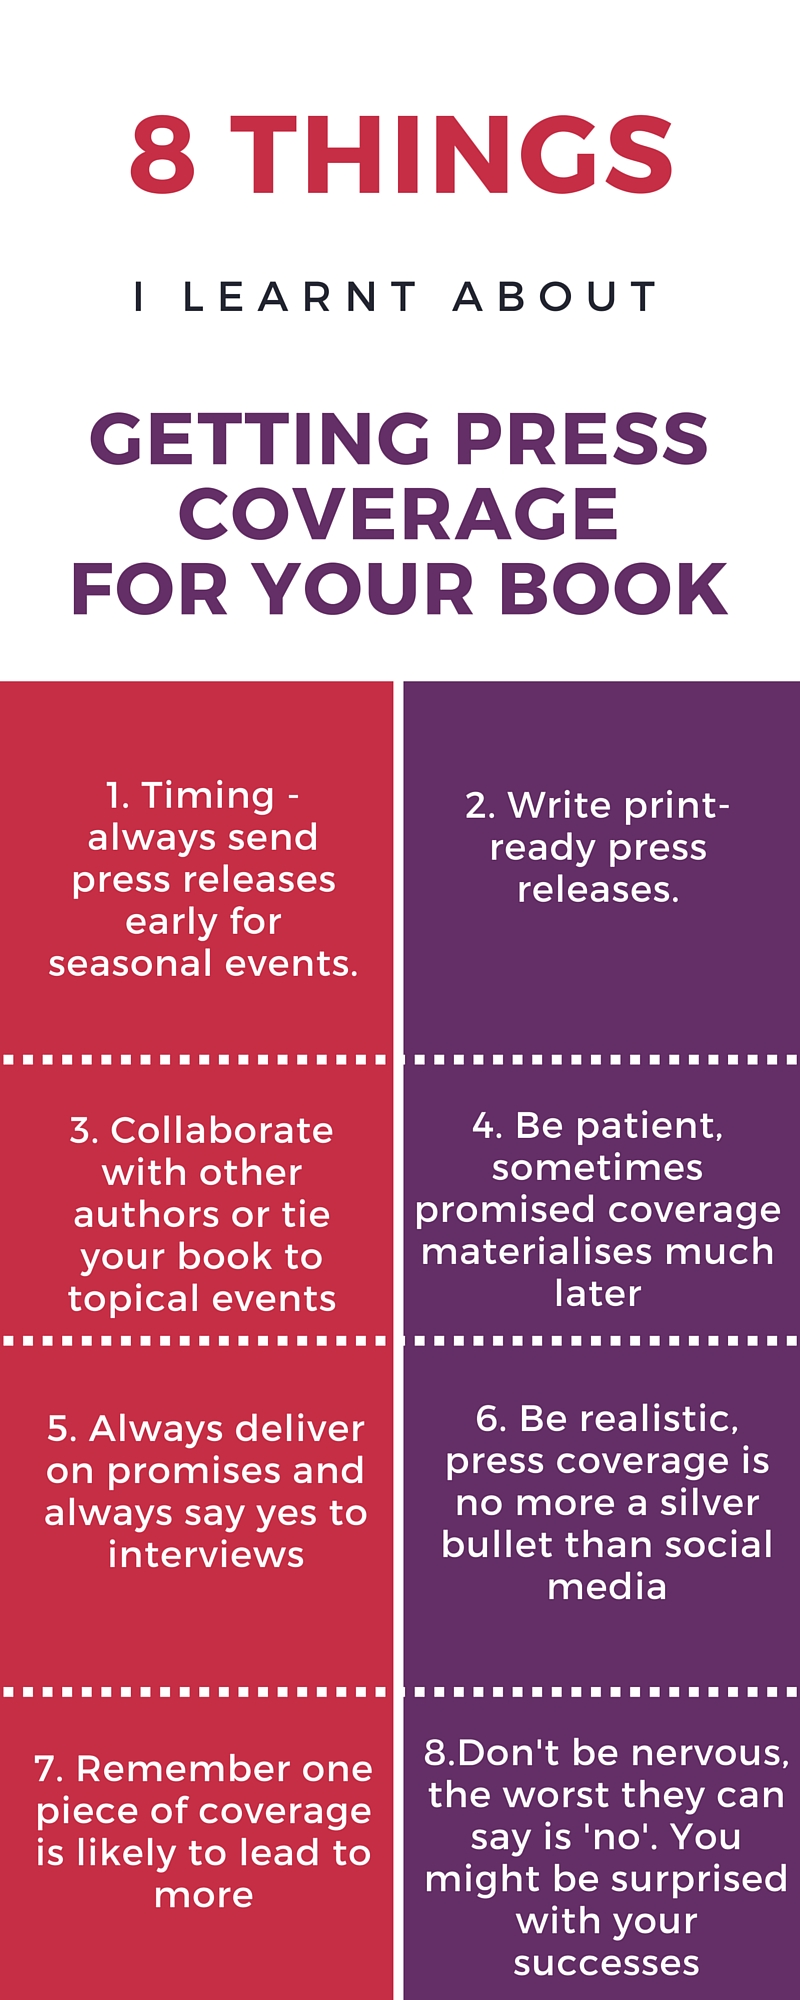 8 considerations for getting press coverage for your books